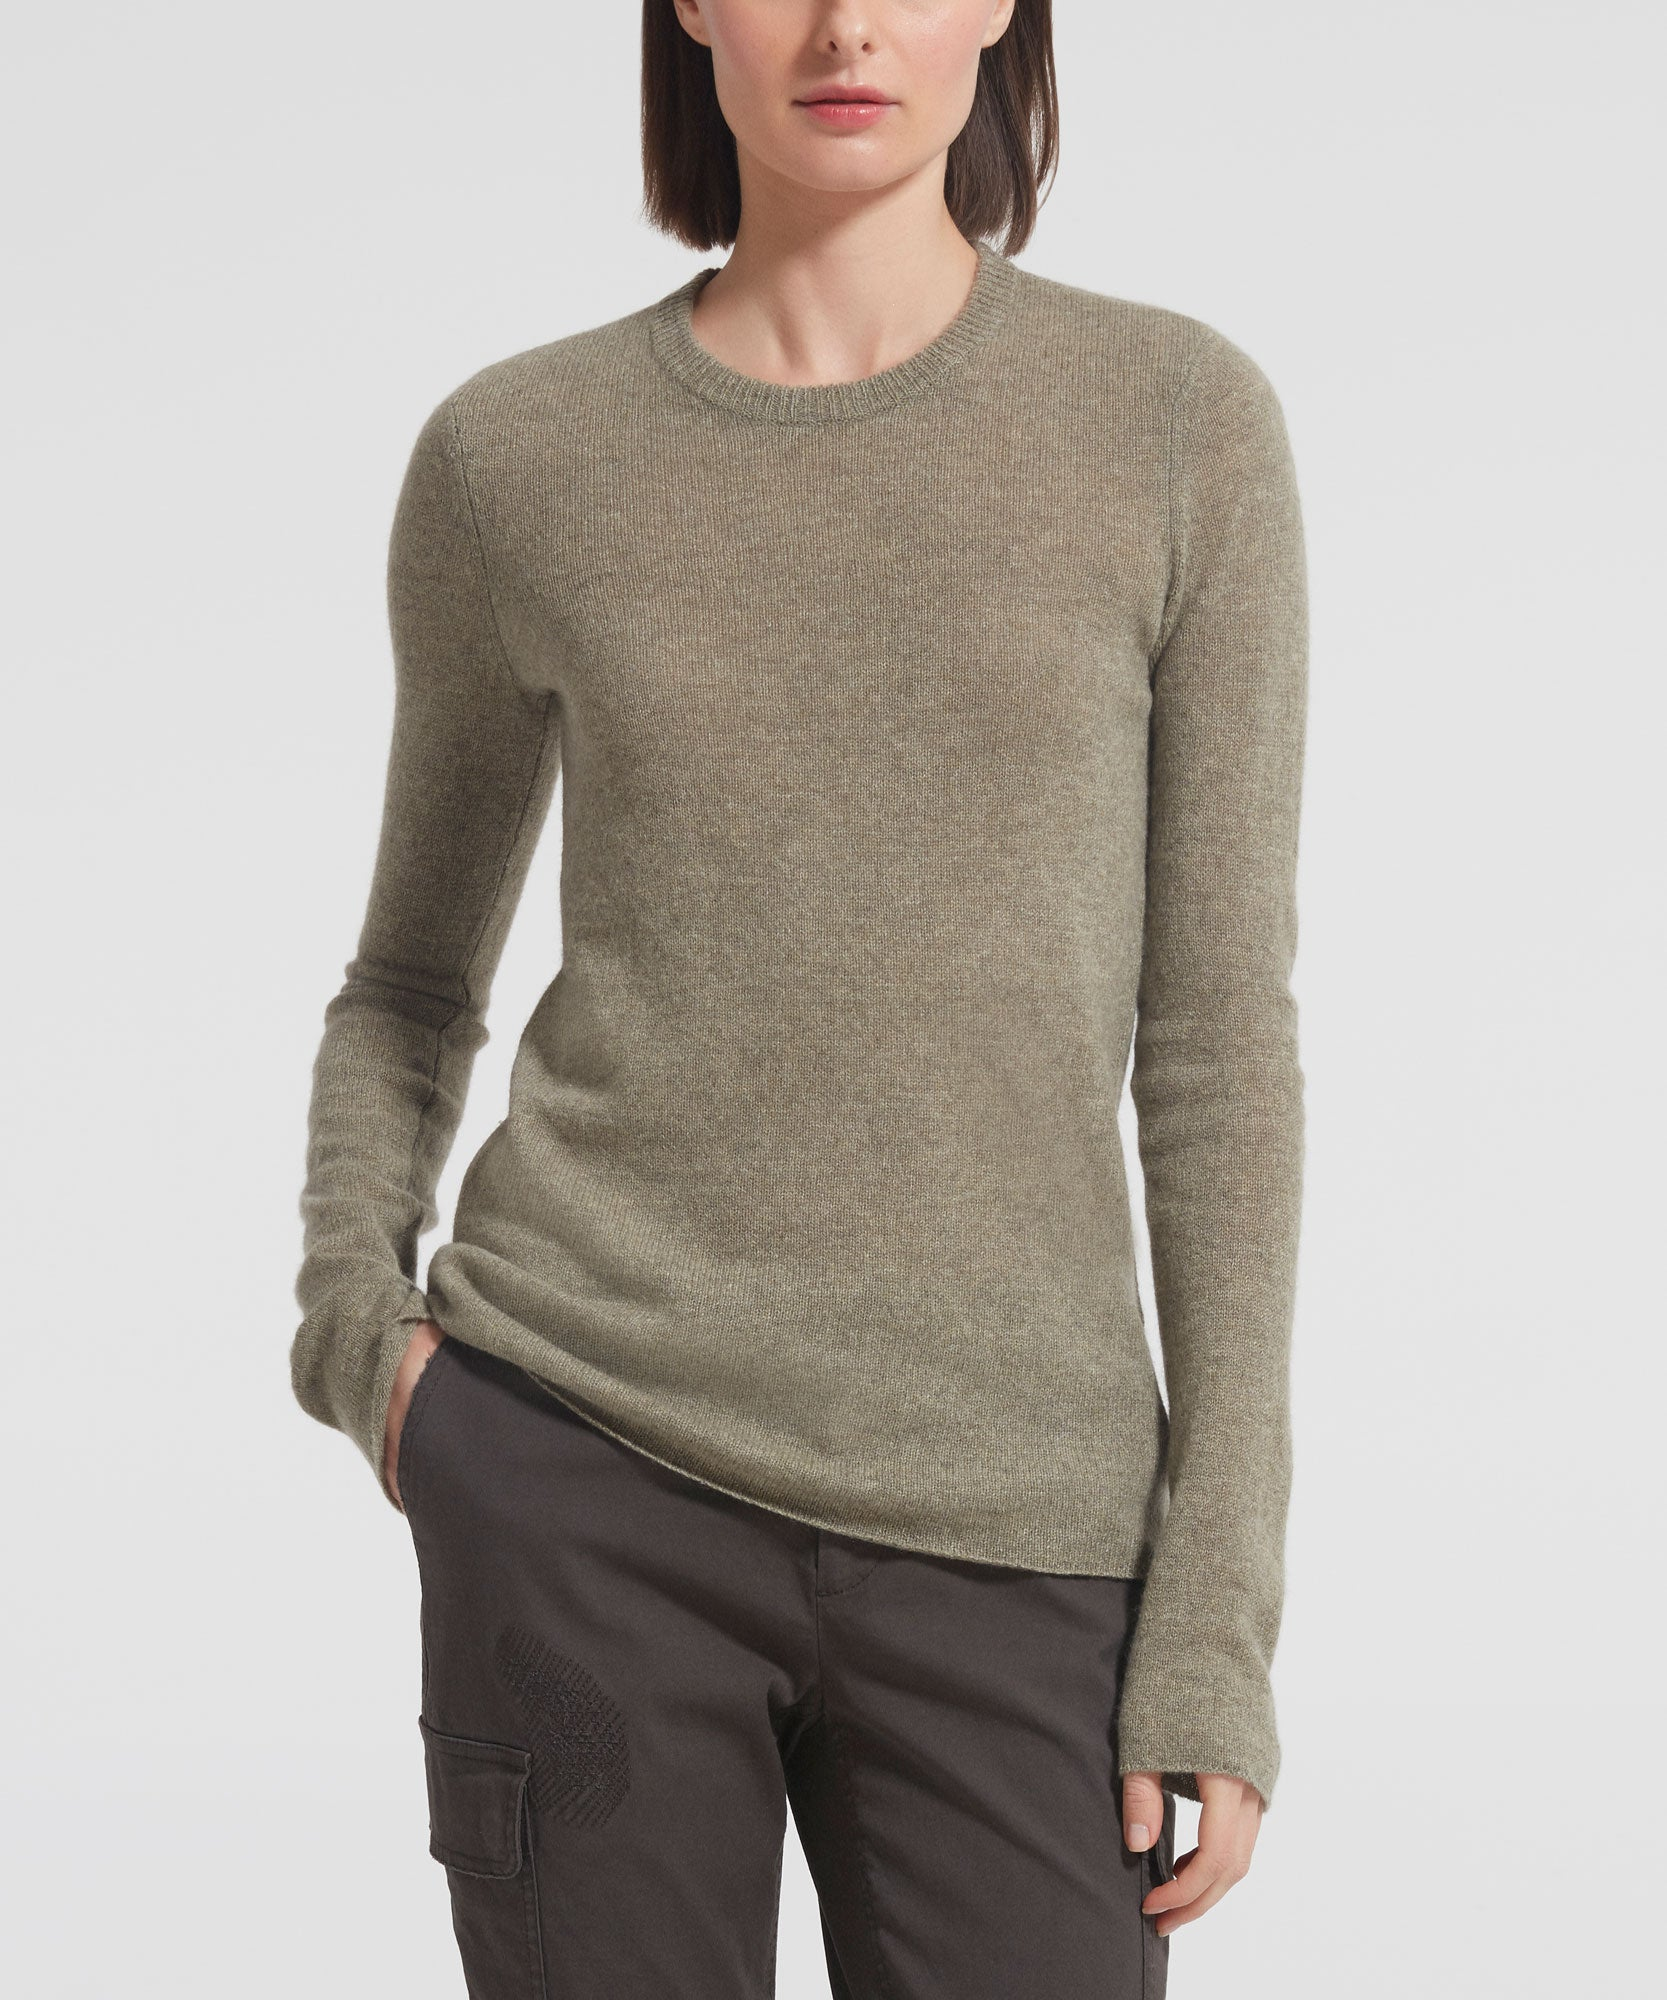 Grass Cashmere Crew Neck Sweater - Women's Luxe Sweater by ATM Anthony Thomas Melillo